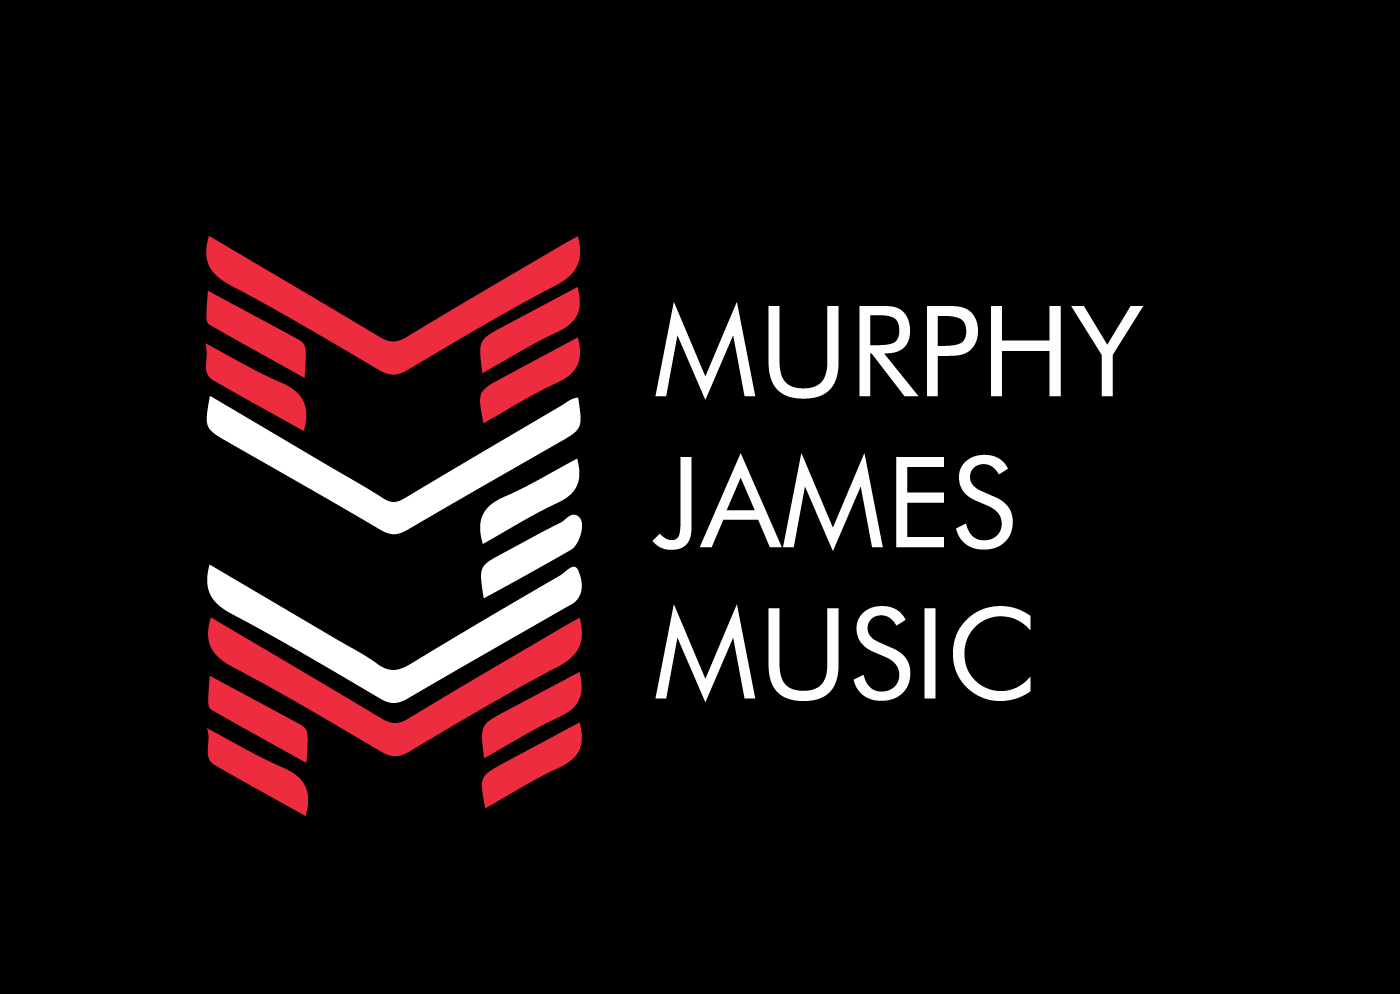 Murphy James Music Logo